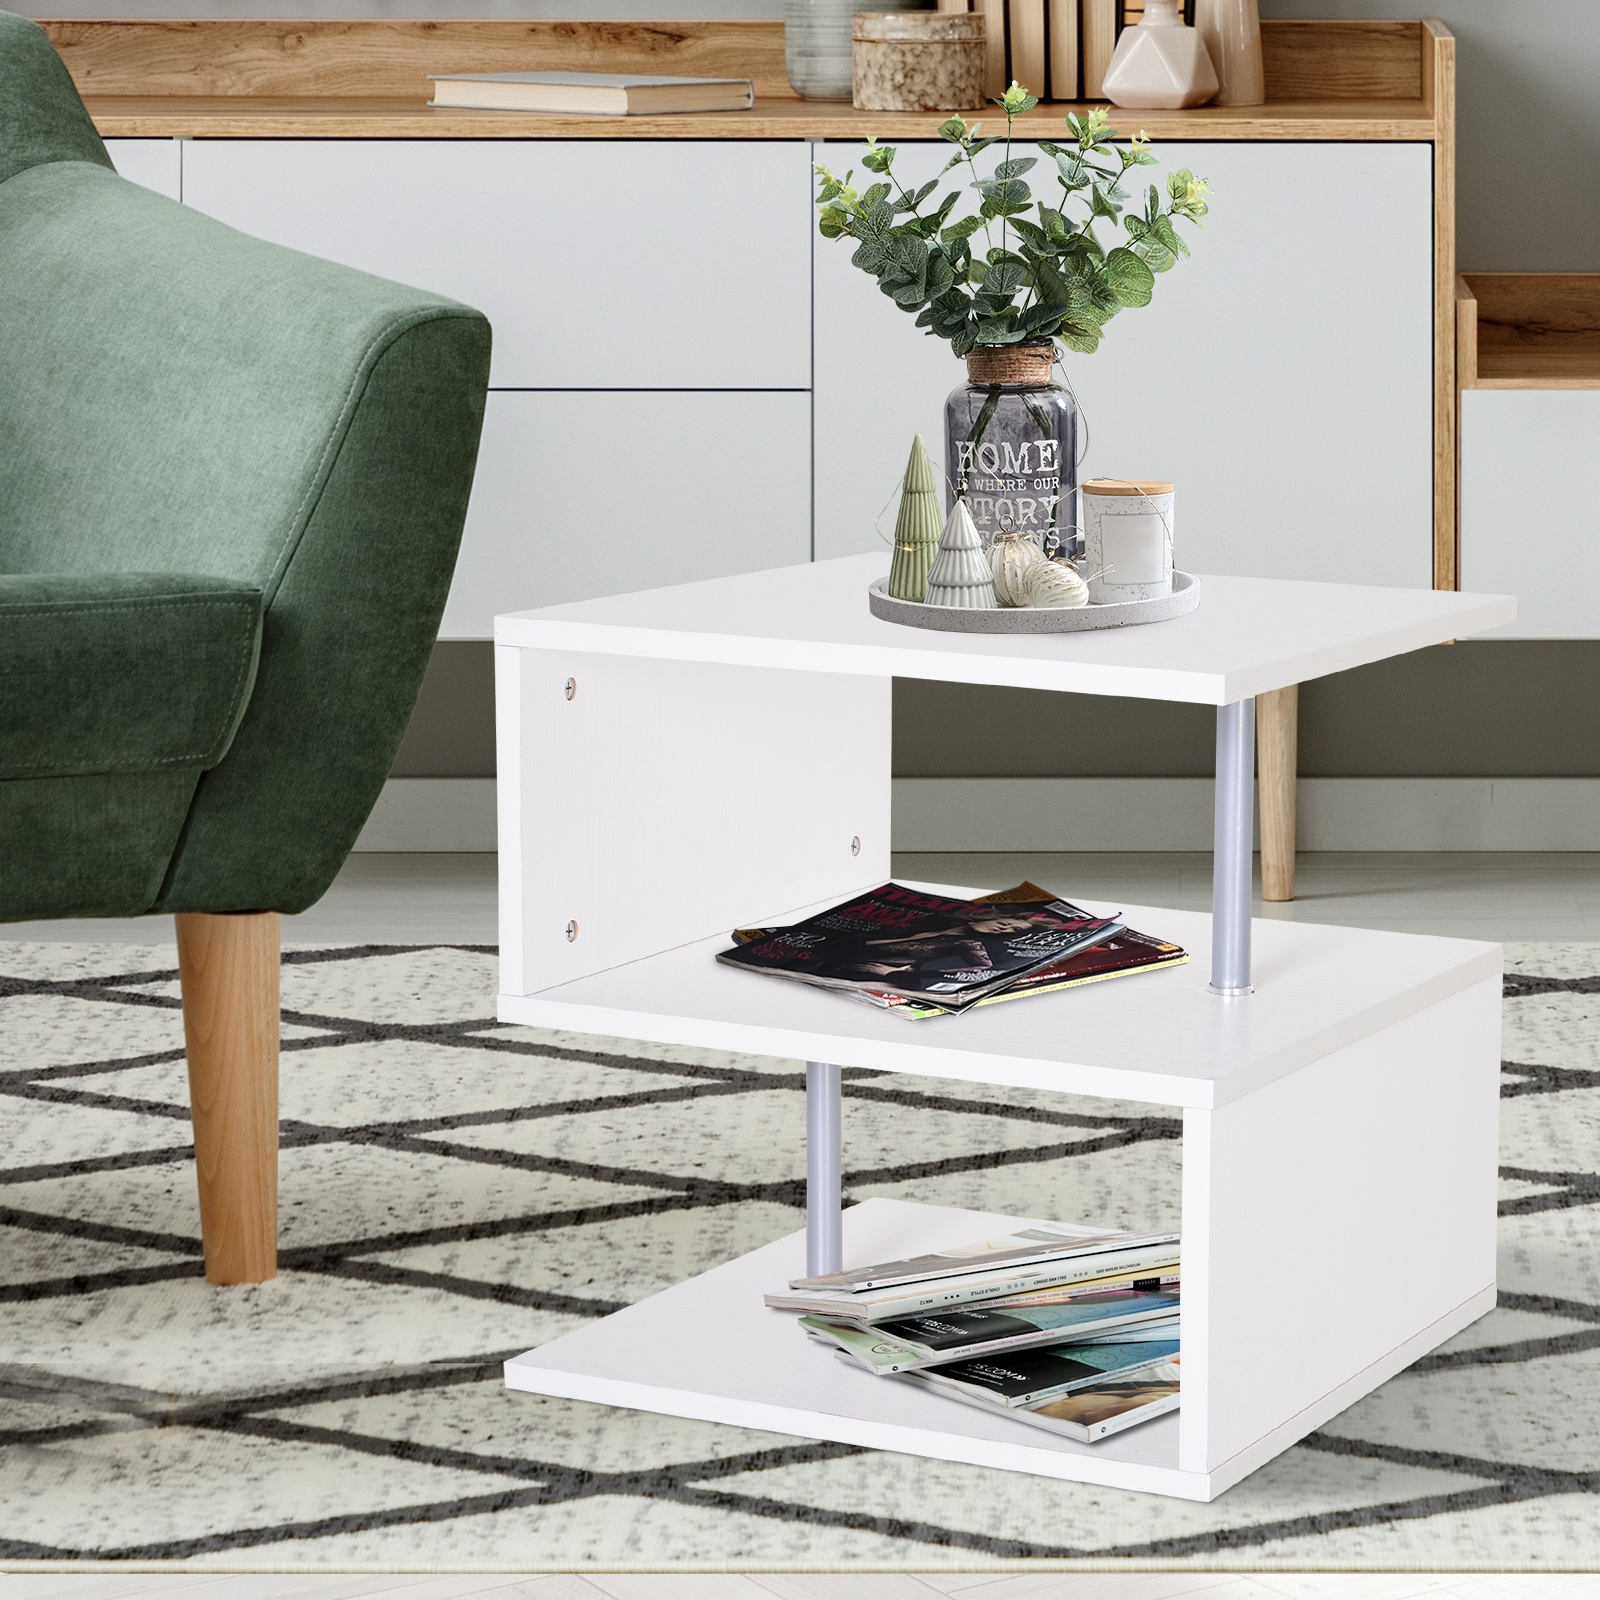 2 Tier Side End Coffee Table Storage Shelves Sofa In Home Garden Furniture Tables Ebay For Blanja